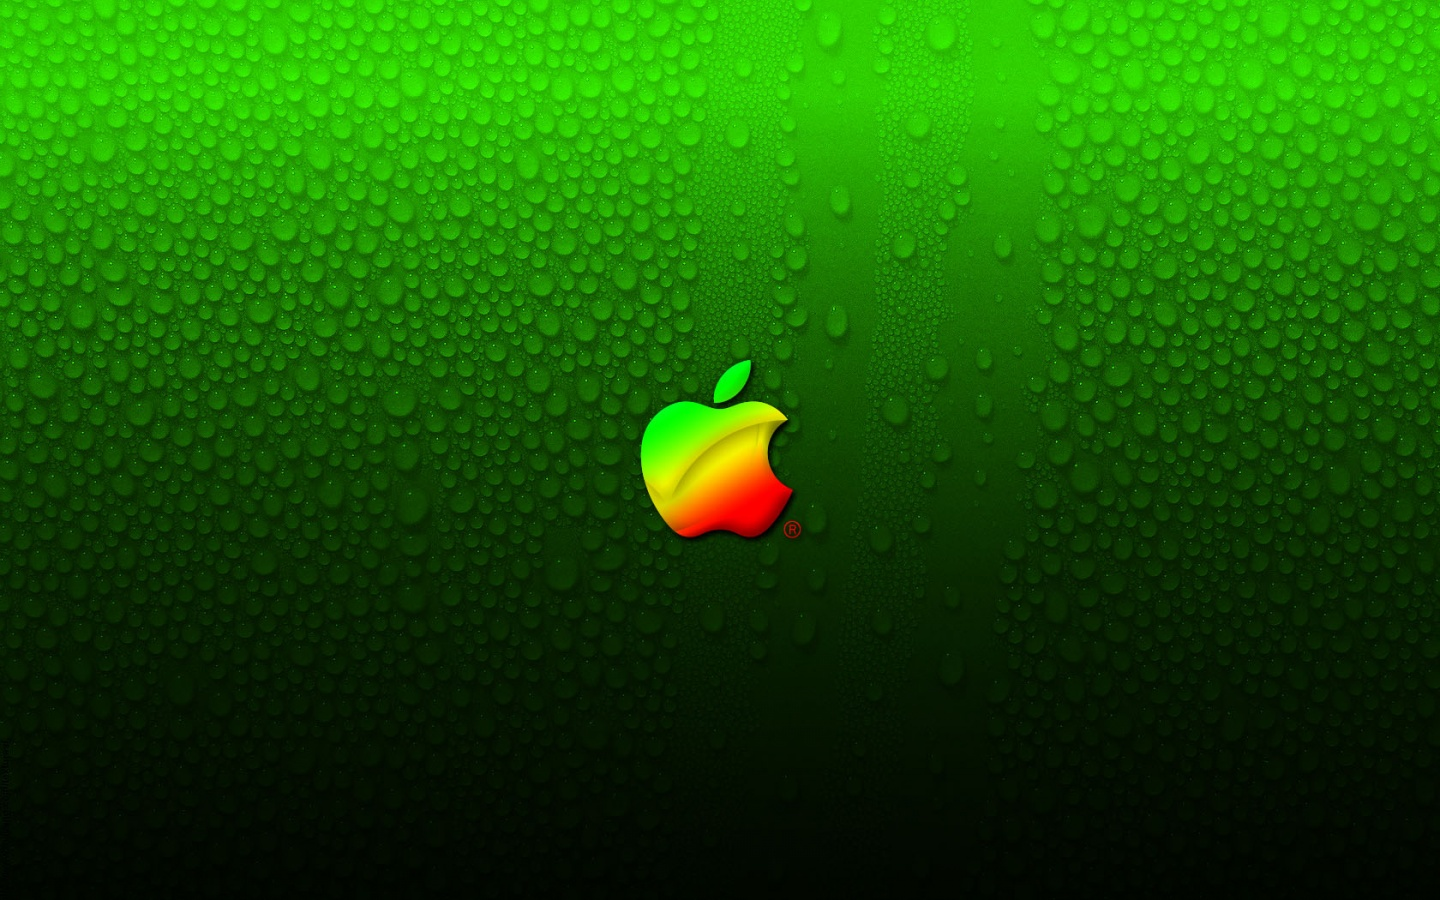 1440x900 Green Apple Desktop PC And Mac Wallpaper